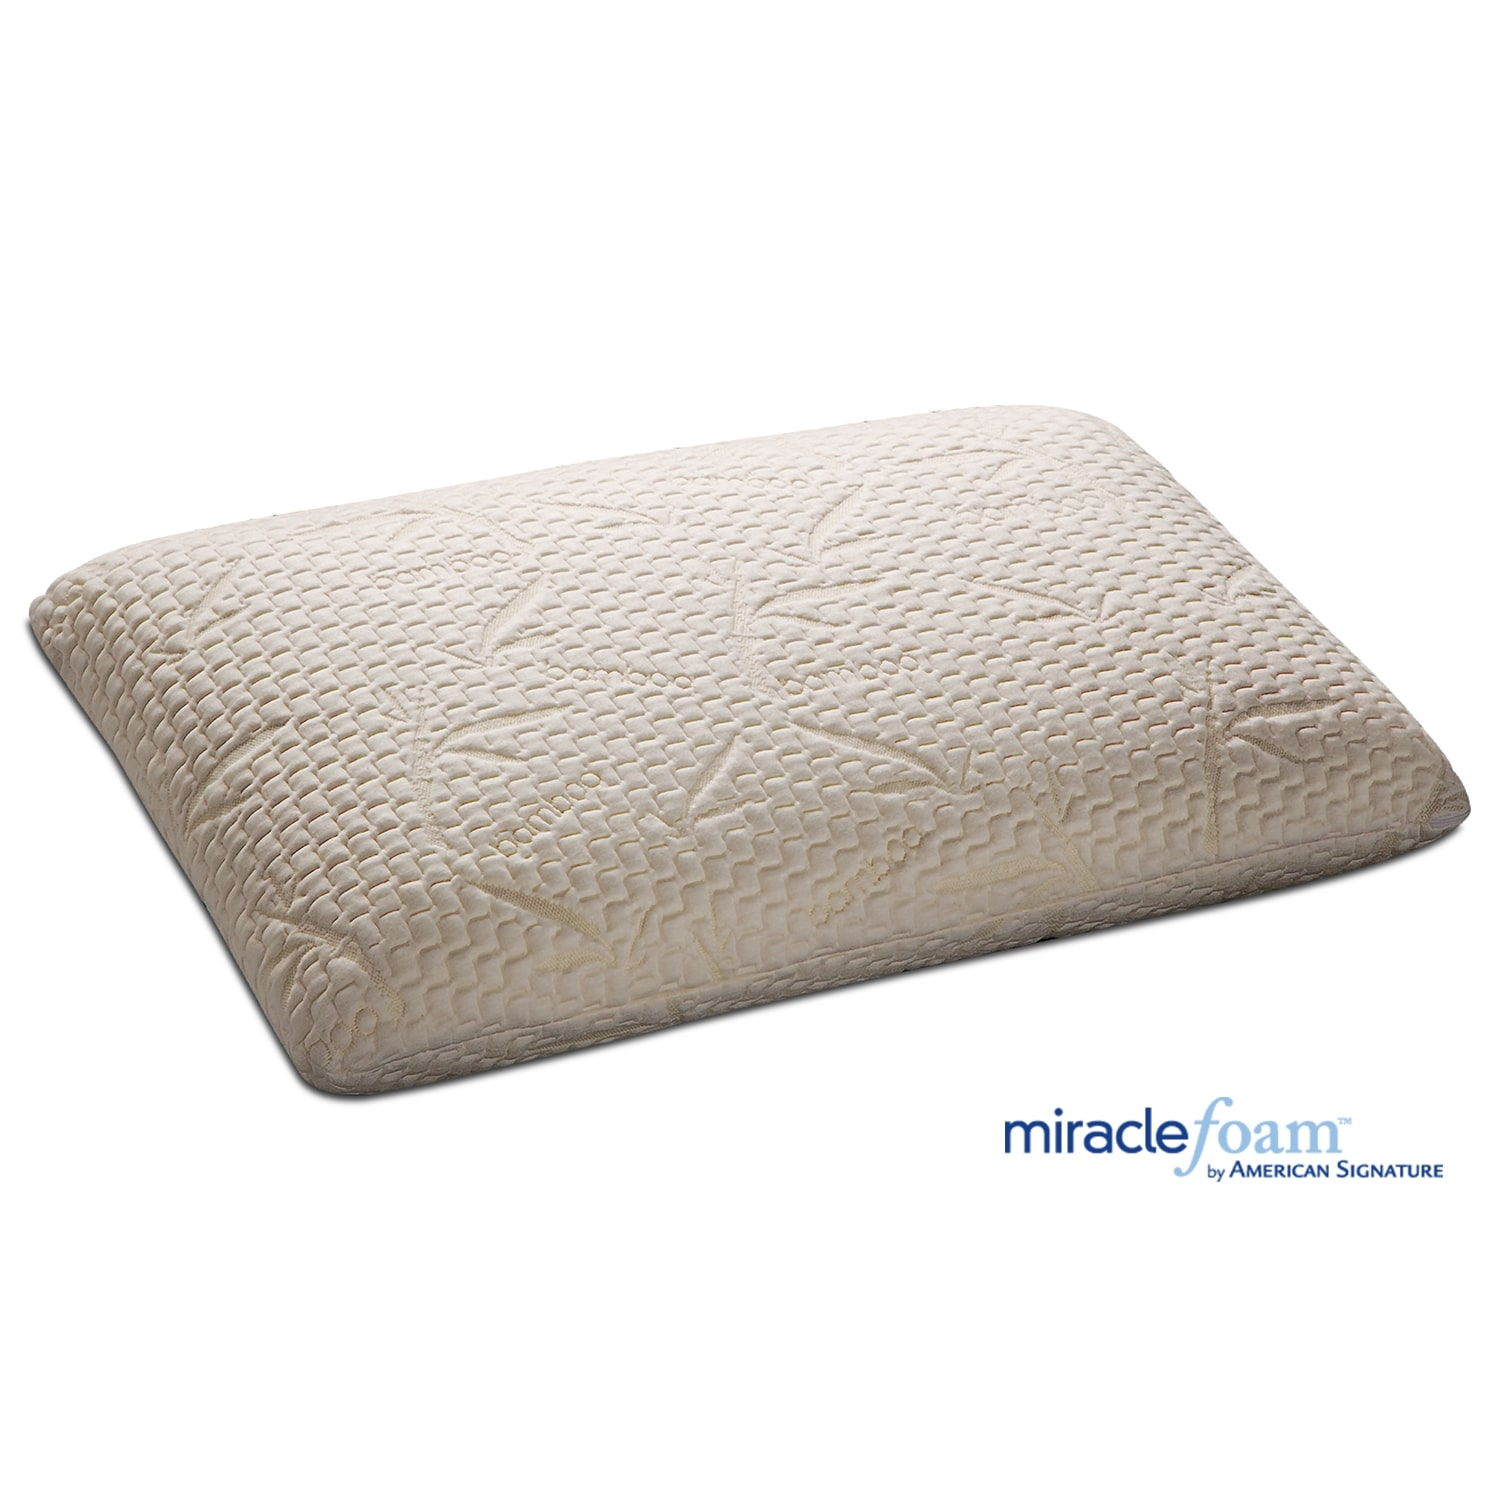 Mattresses and Bedding - Traditional Queen Pillow